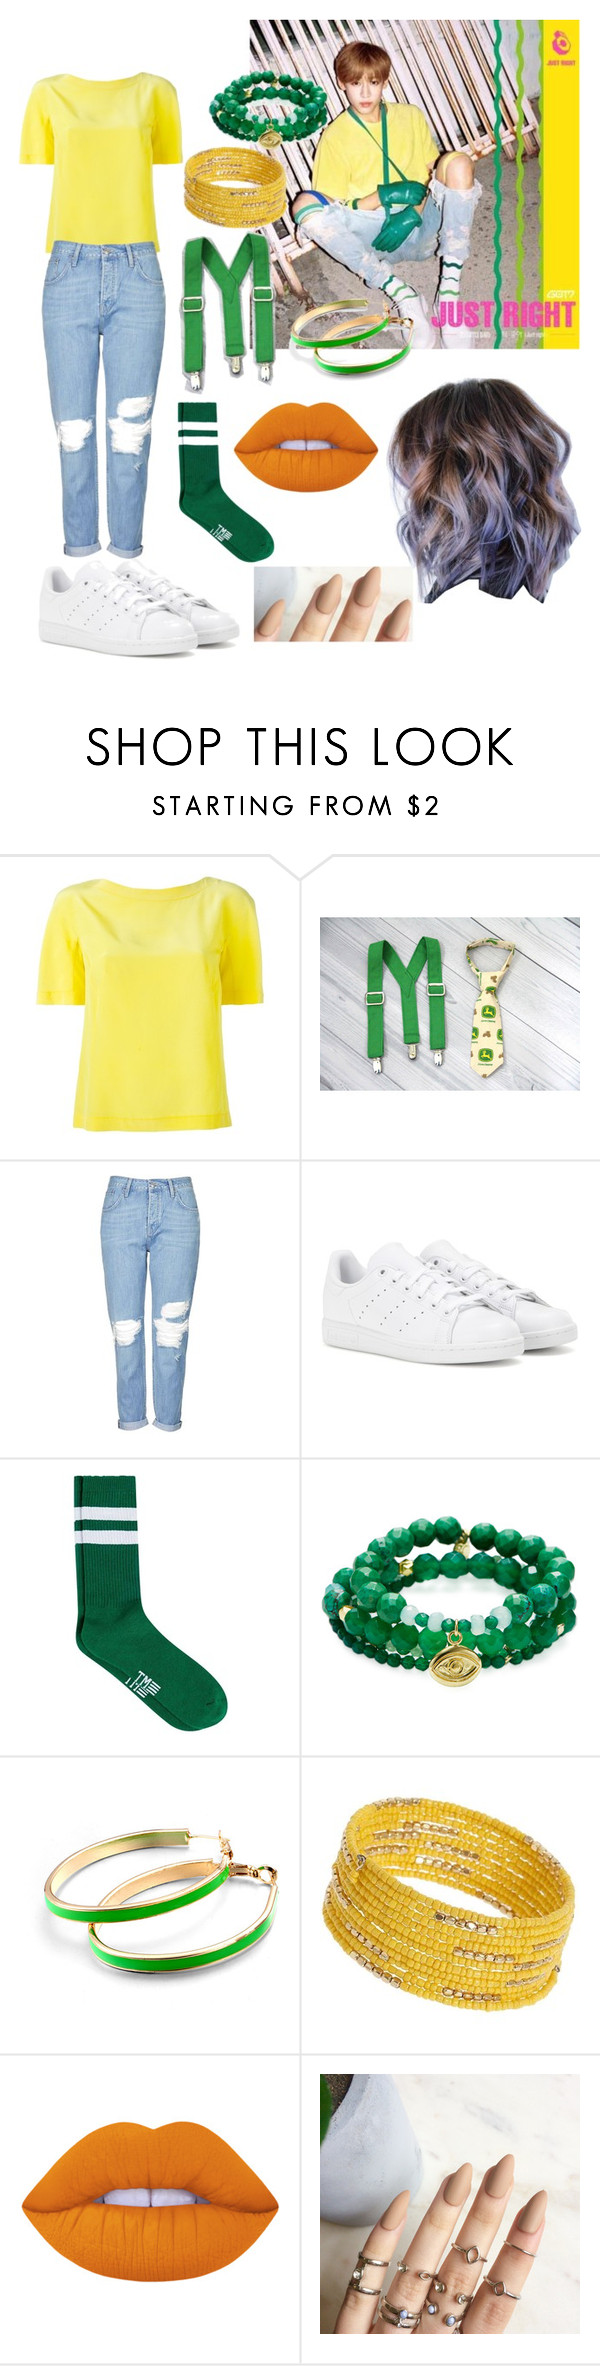 """Got7/BamBam/Just Right"" by emili-ruiz ❤ liked on Polyvore featuring Julio, Alberta Ferretti, John Deere, Topshop, adidas, Topman, Good Charma, Dorothy Perkins and Lime Crime"